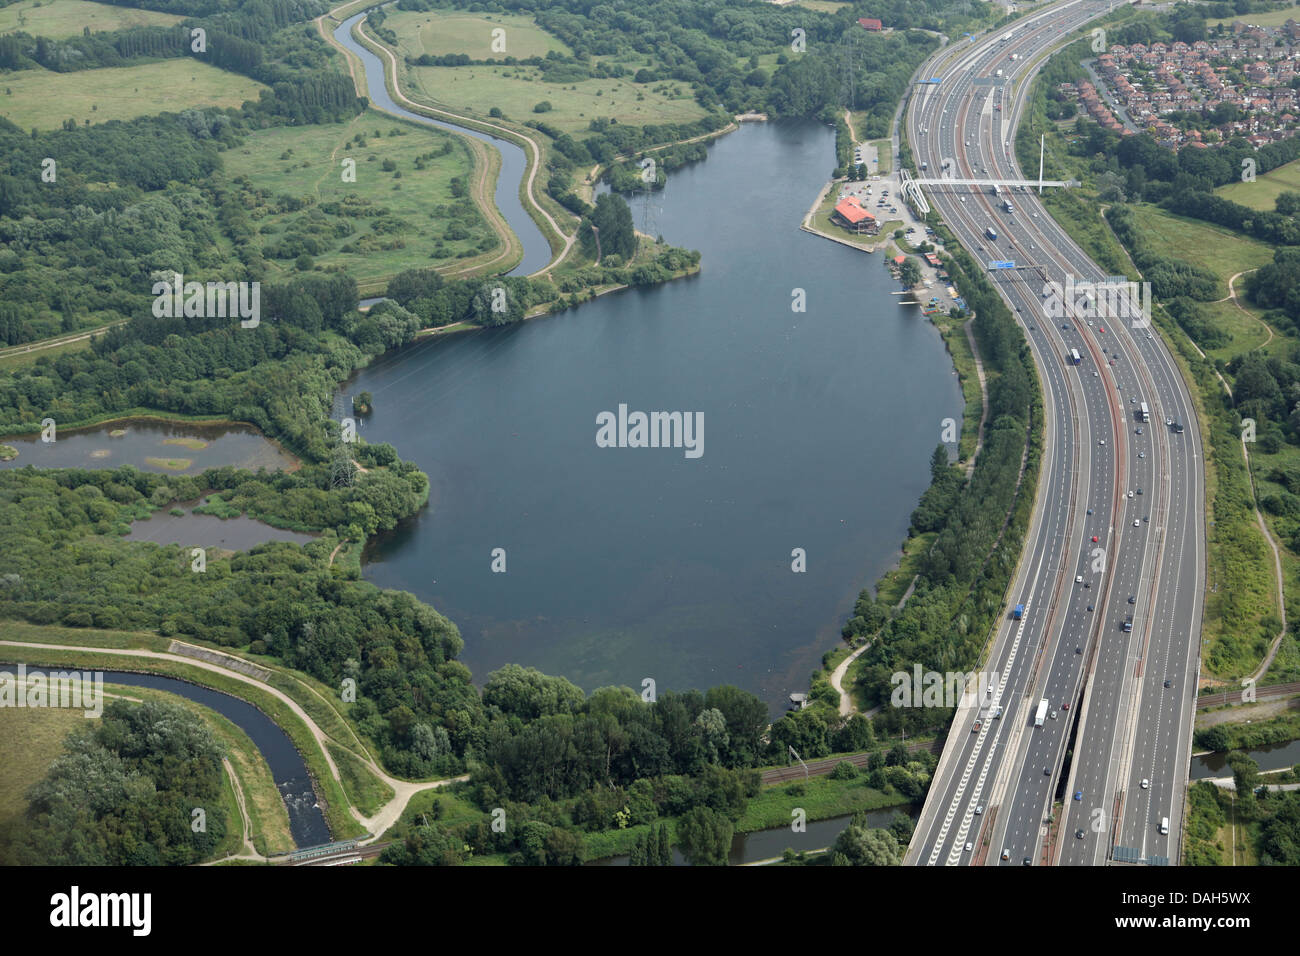 M60 For Sale >> aerial view of Sale Water Park, Manchester Stock Photo, Royalty Free Image: 58155494 - Alamy